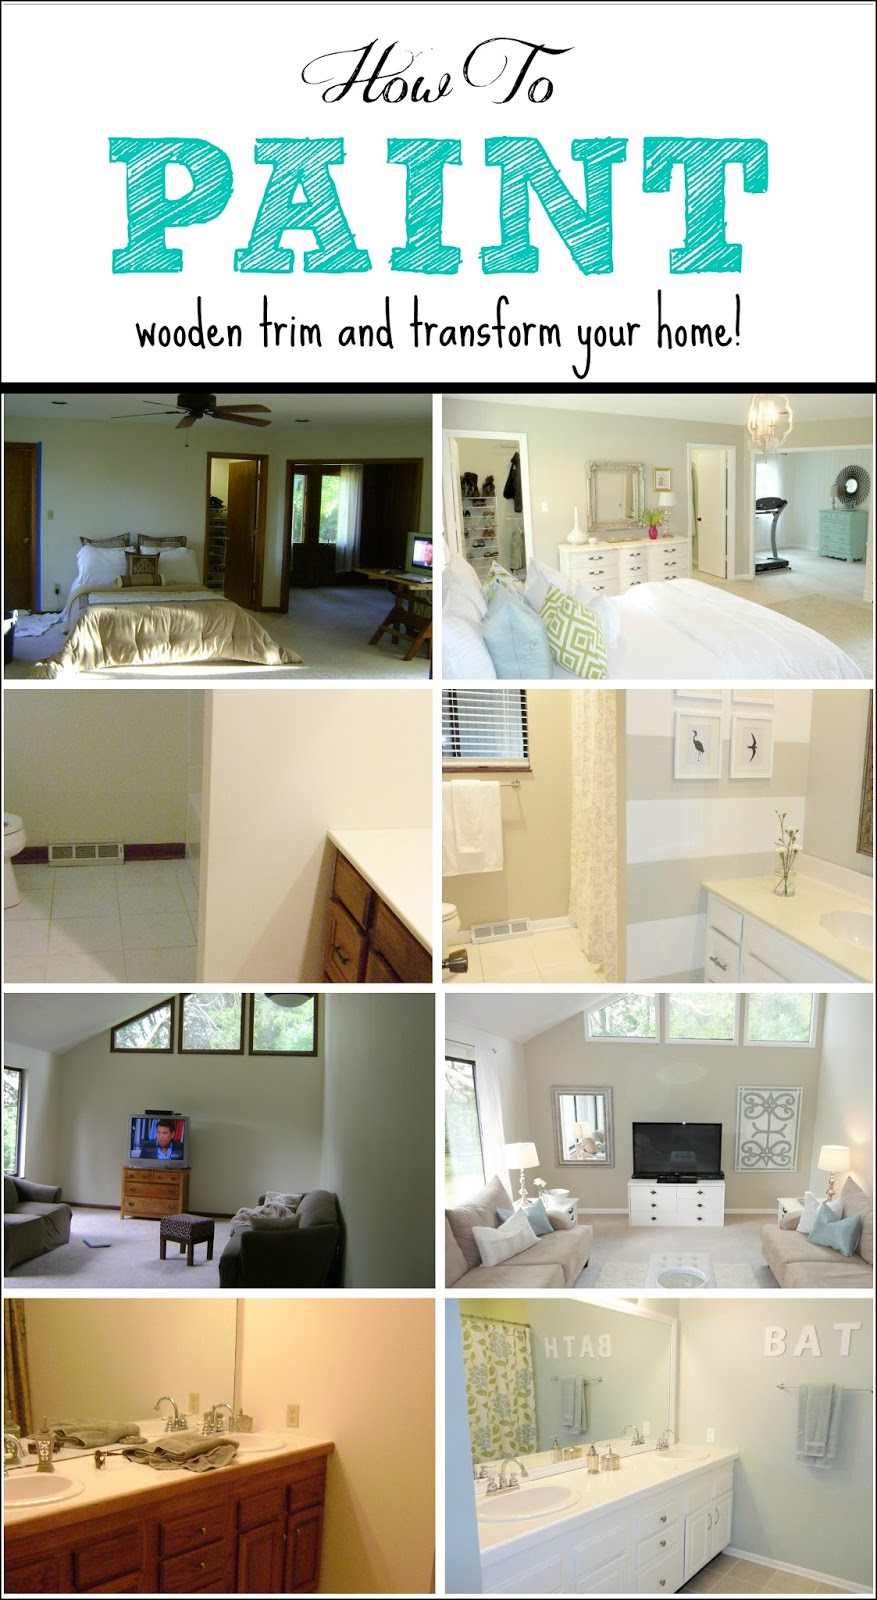 Best ideas about DIY House Painting . Save or Pin Sire Design Daily 10 Home Improvement Ideas How To Make Now.